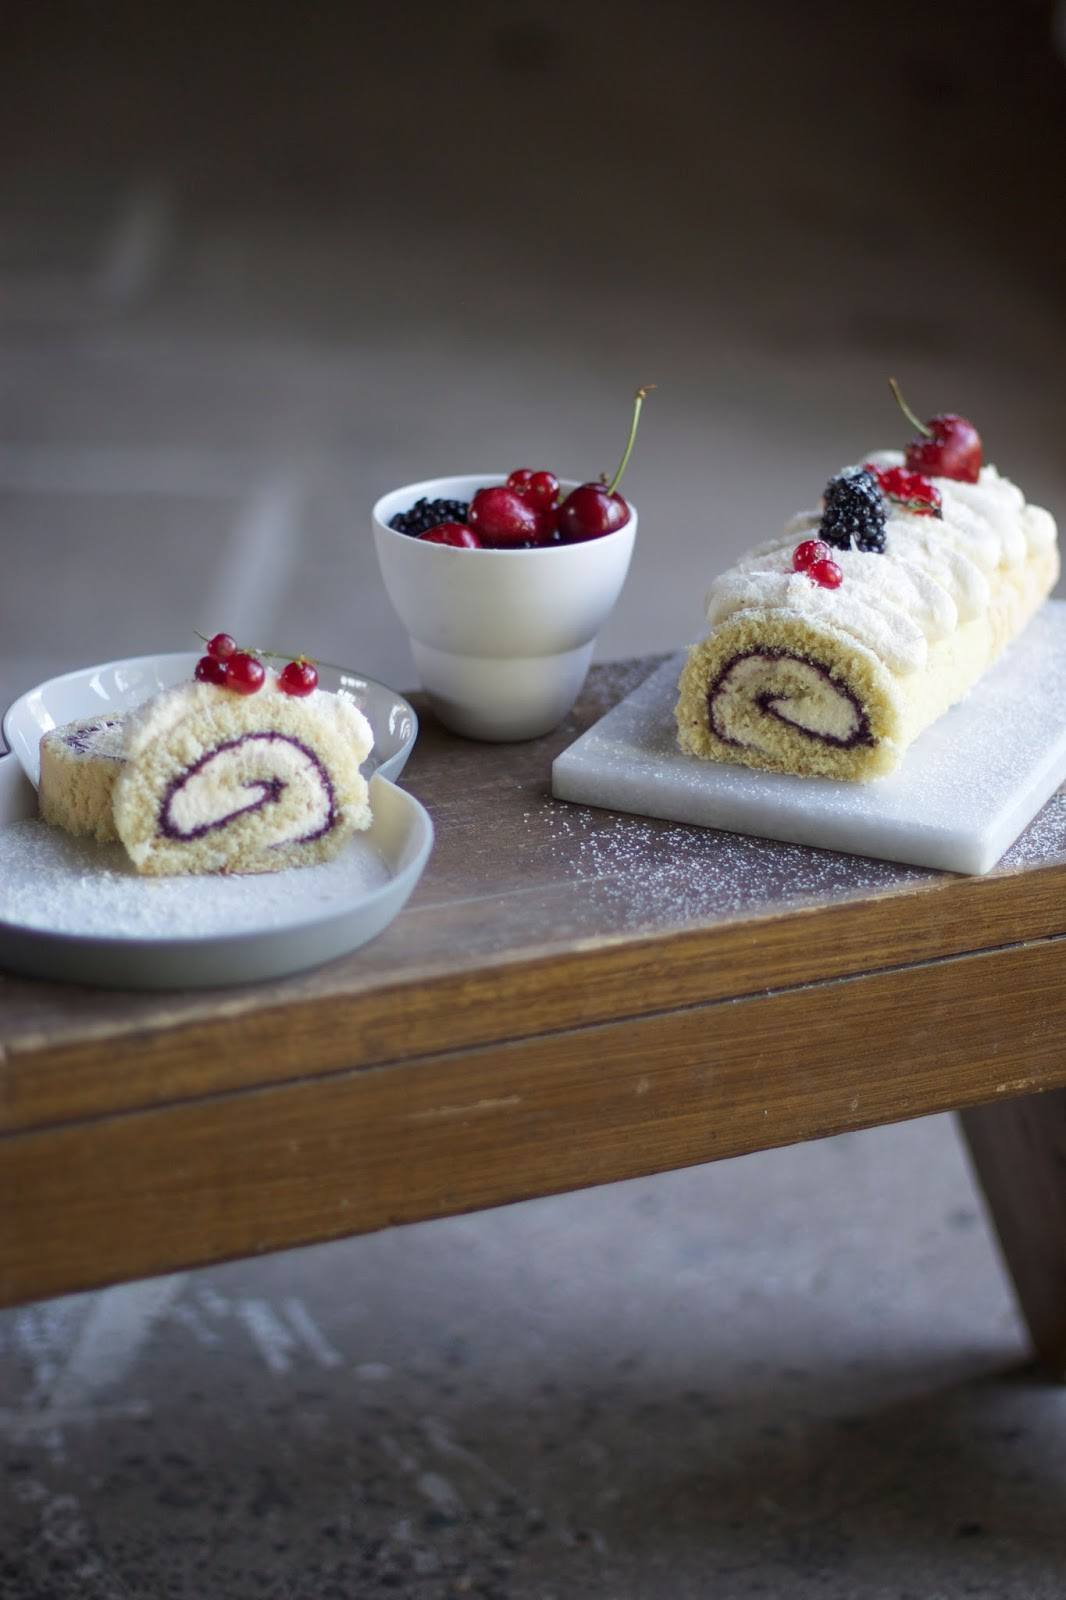 Gluten-free Swiss Roll with Berries & White Chocolate